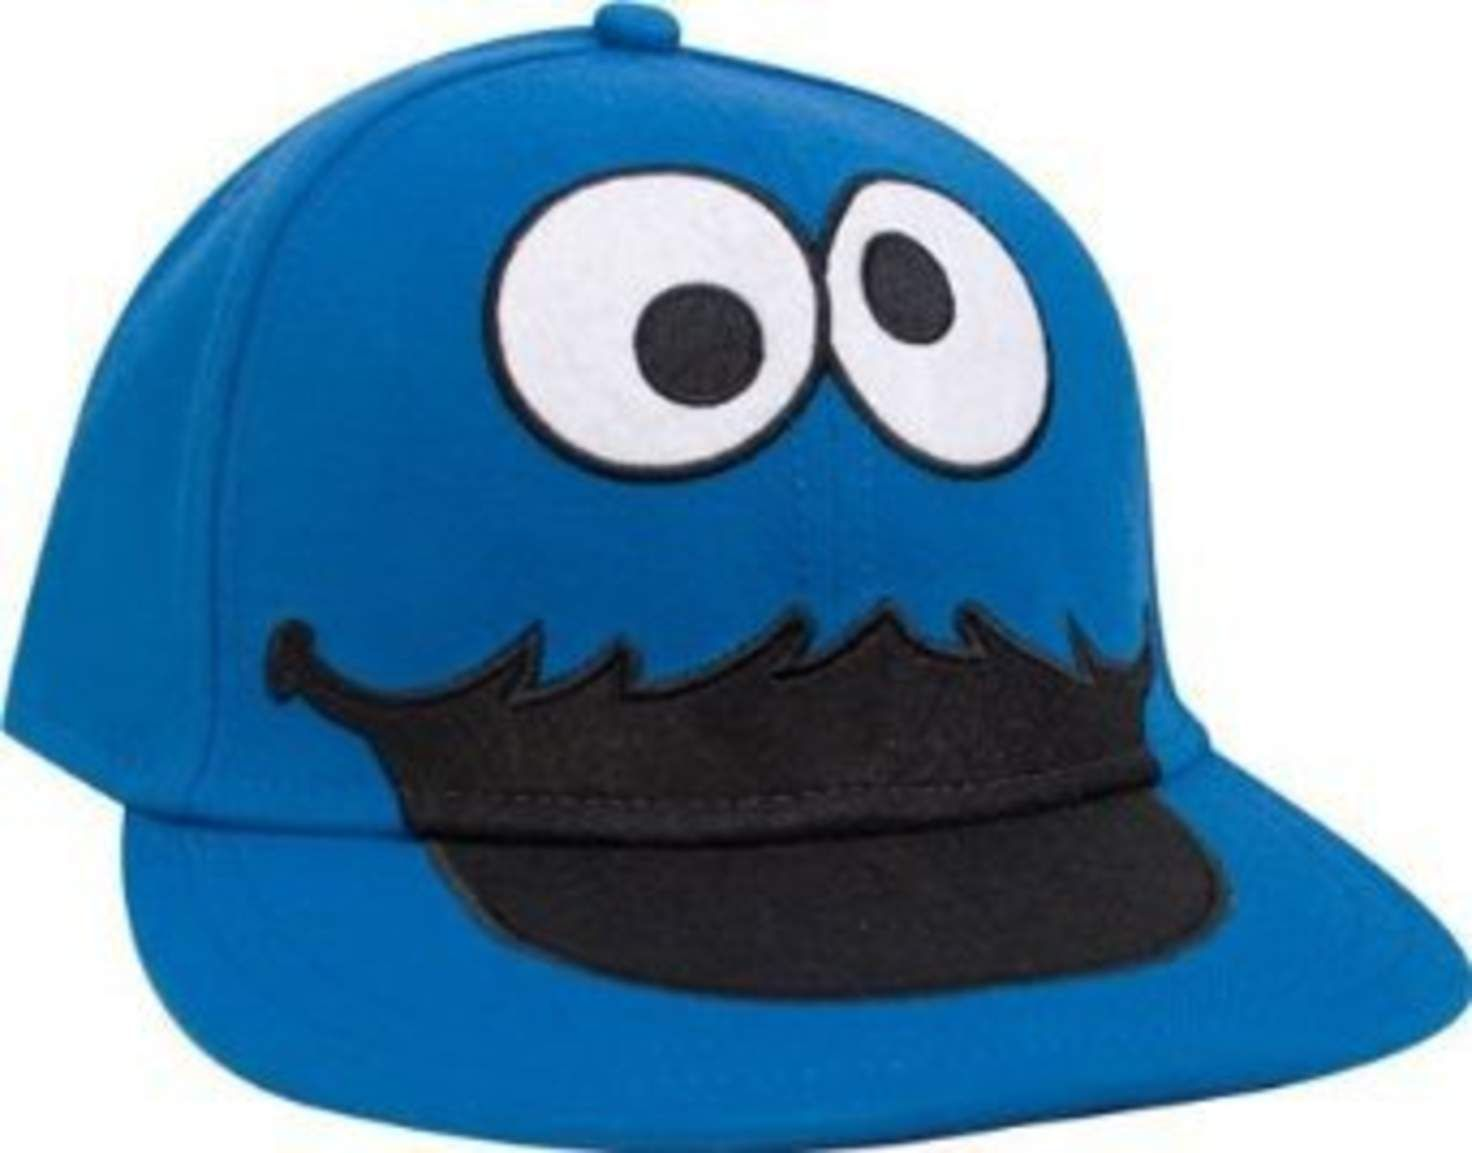 6026f479604b9 Sesame Street Cookie Monster Face Fitted Flat-bill Hat